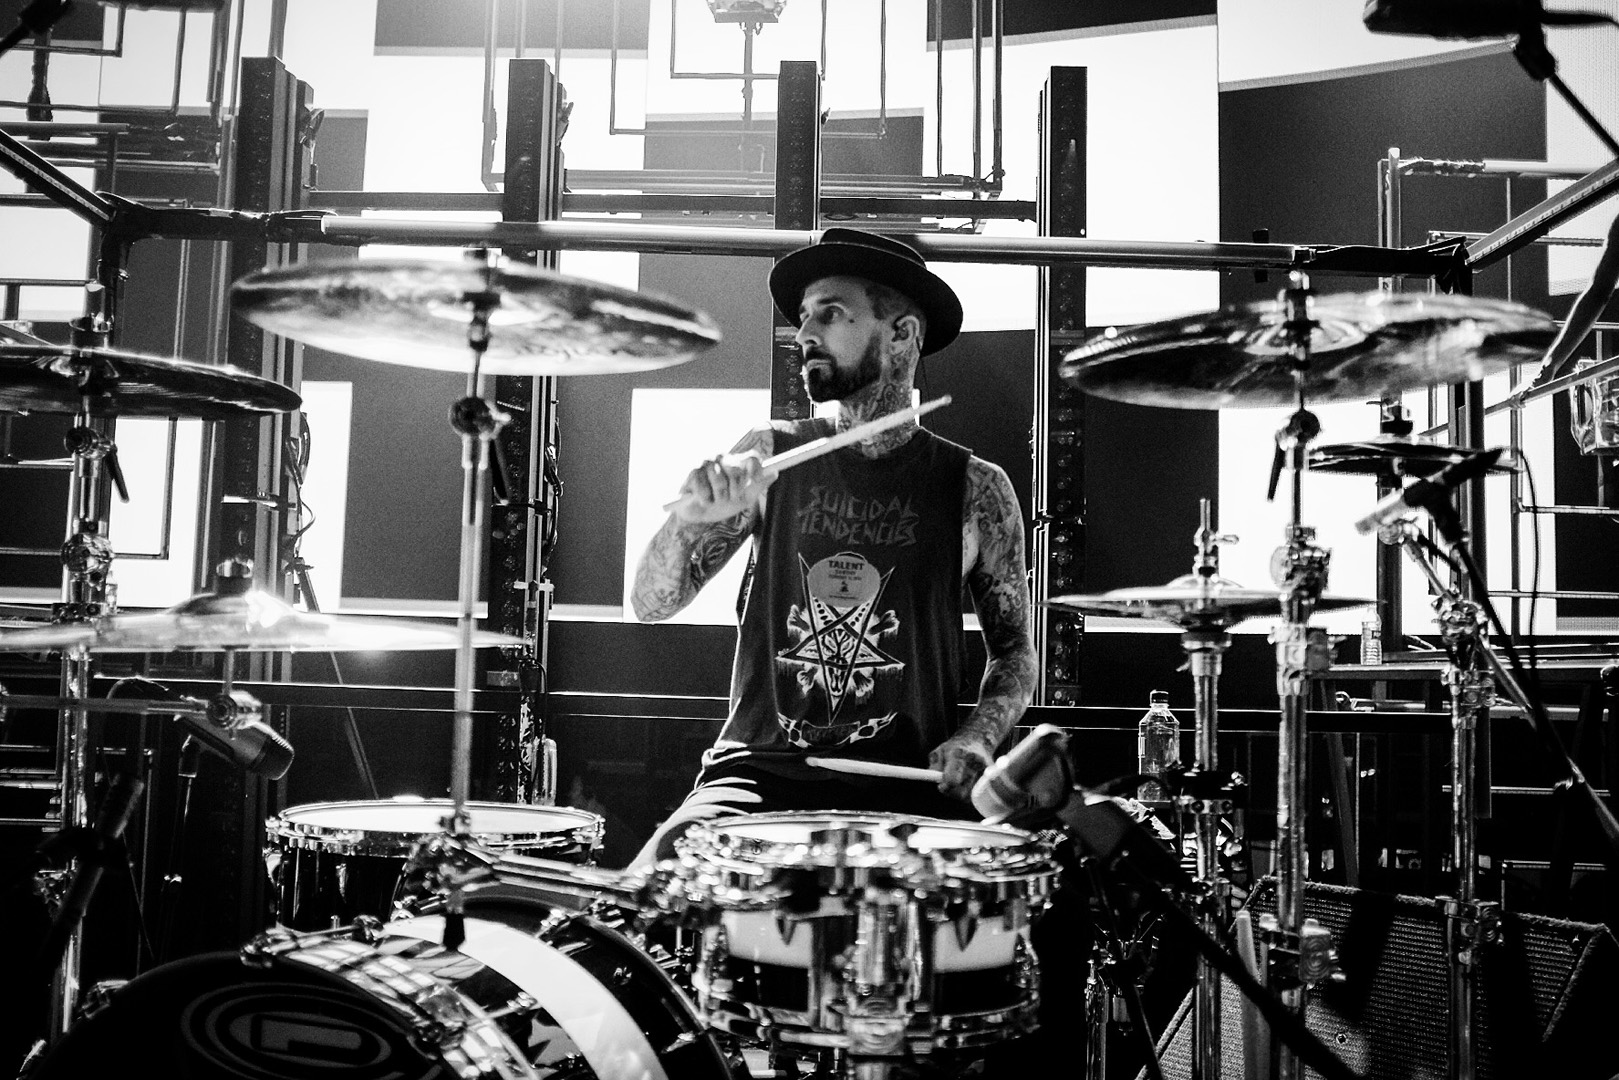 Travis Barker rips on the drums during rehearsals.